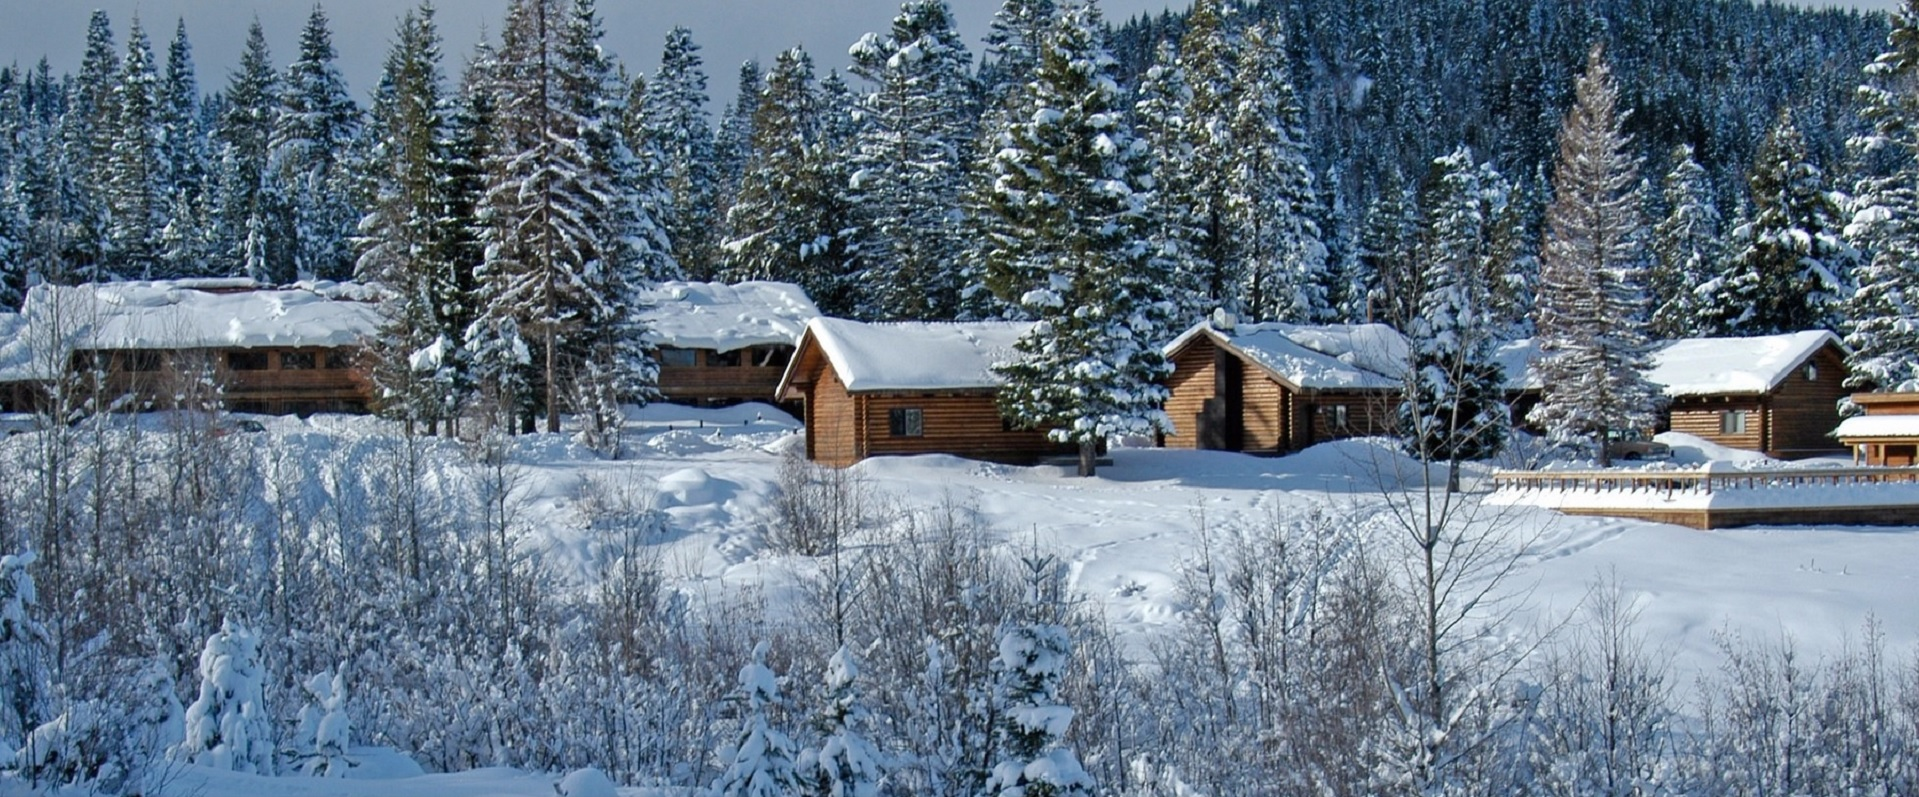 Cooper Spur Lodging Outdoors